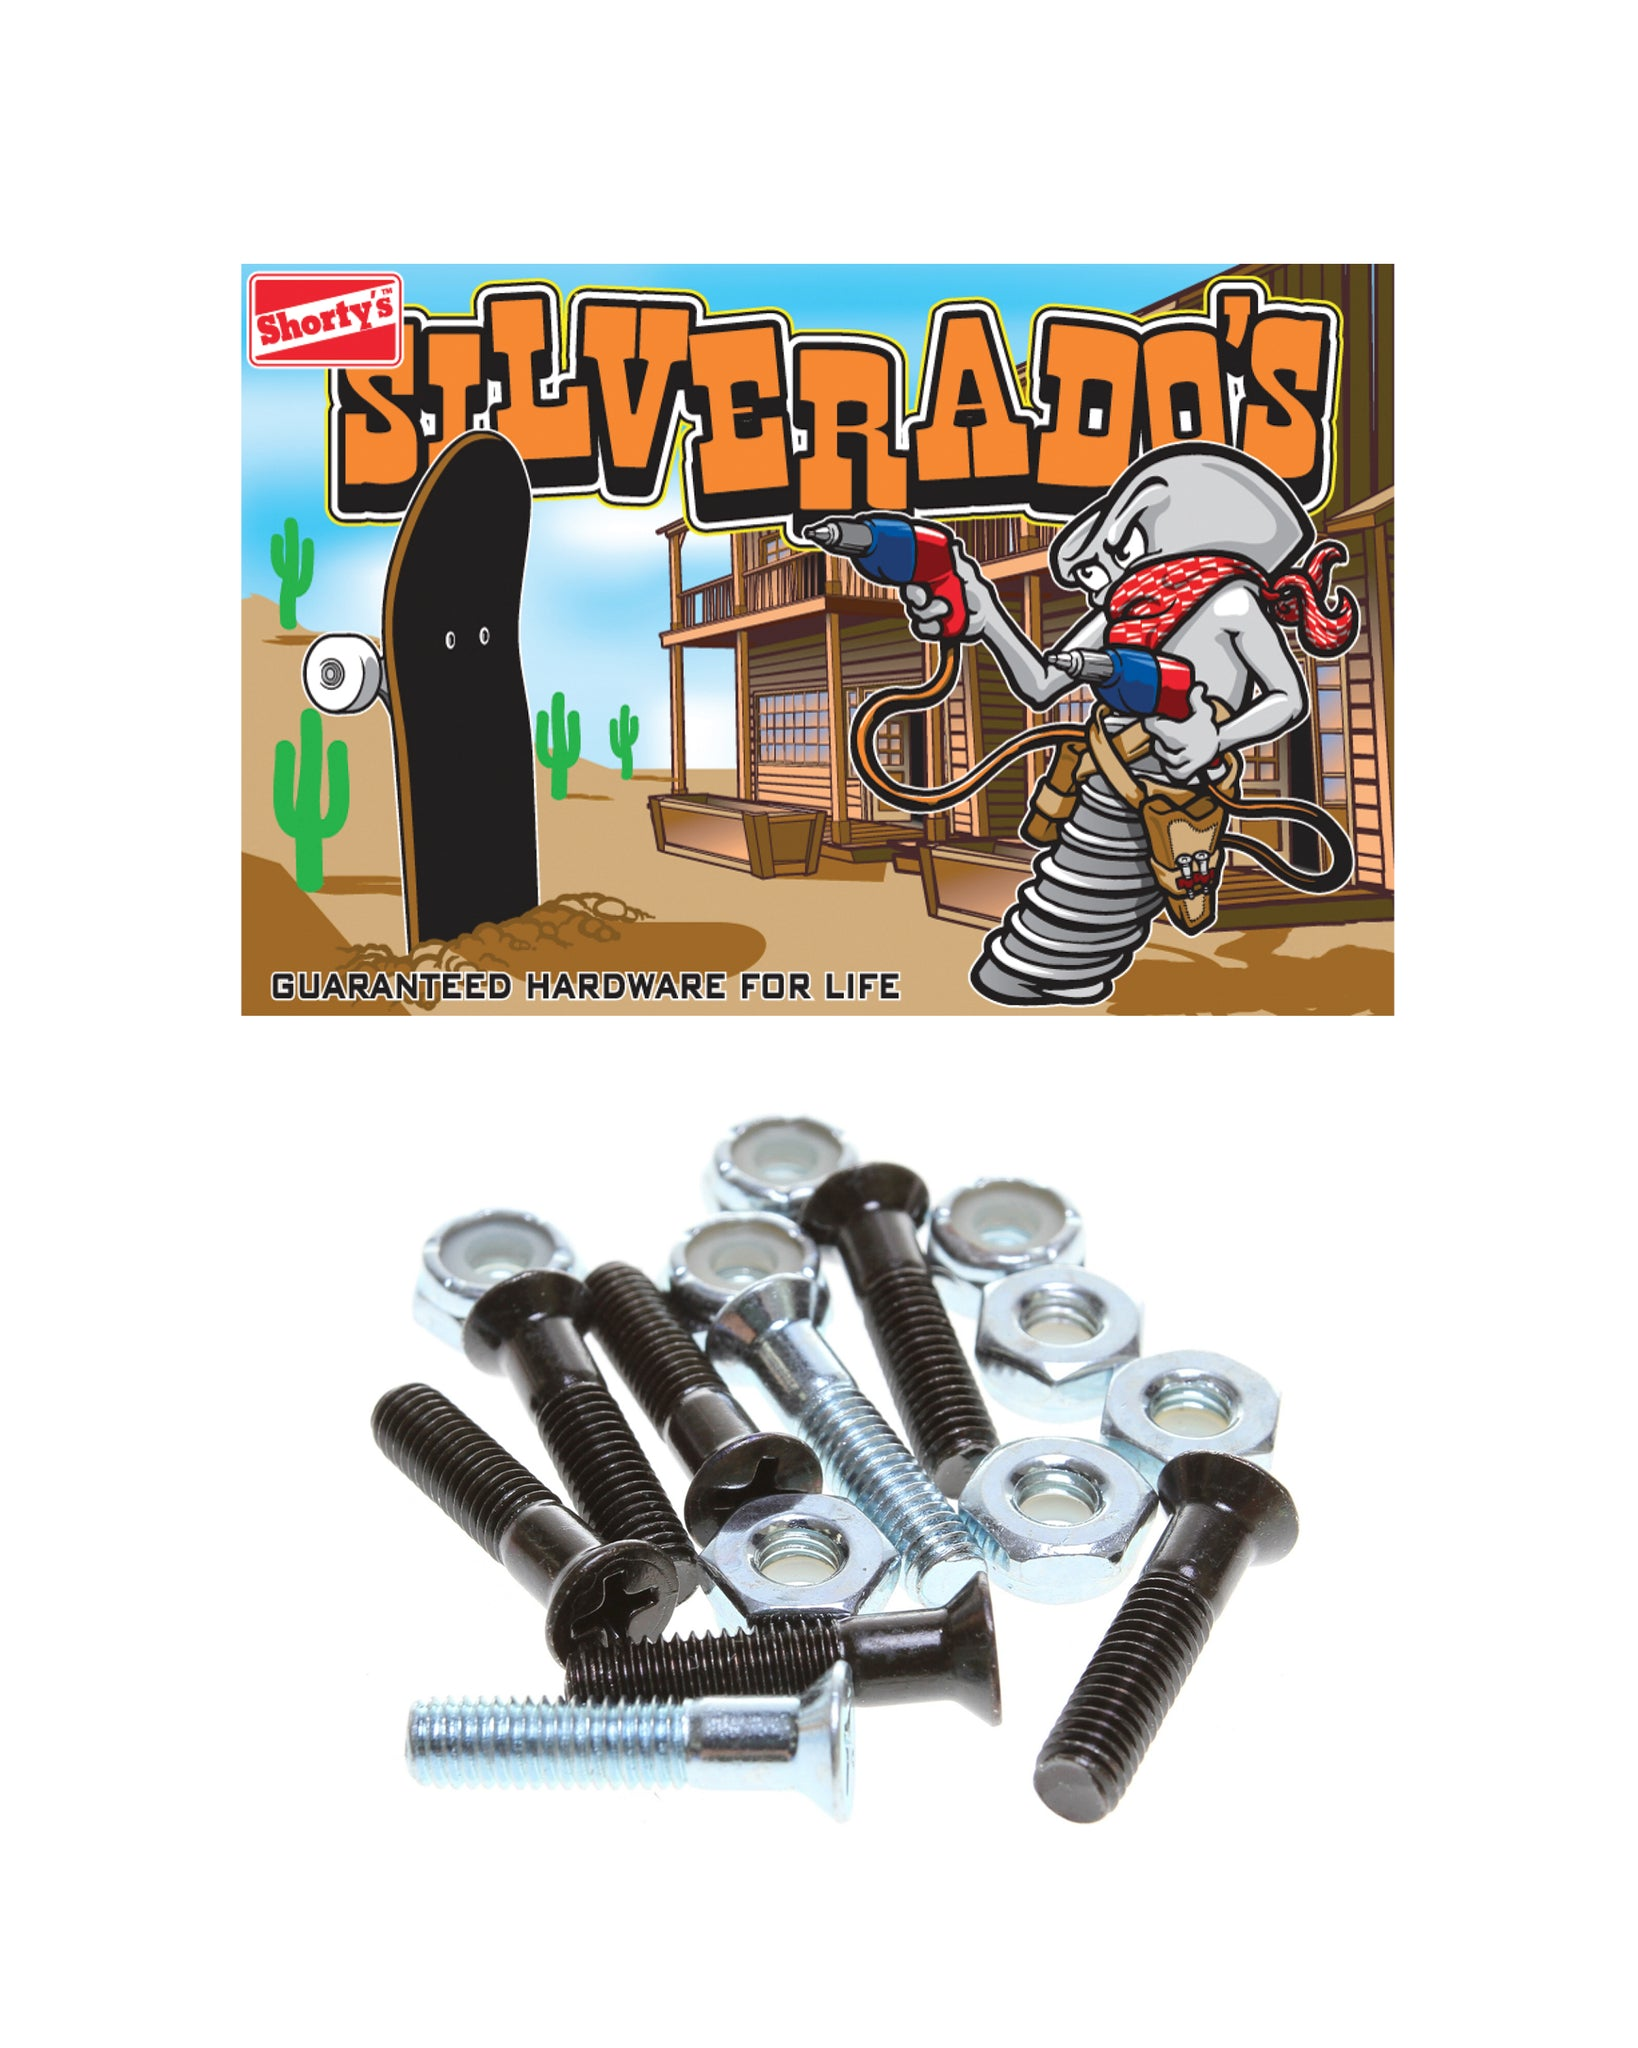 Shorty's Silverado's Phillips Head Hardware